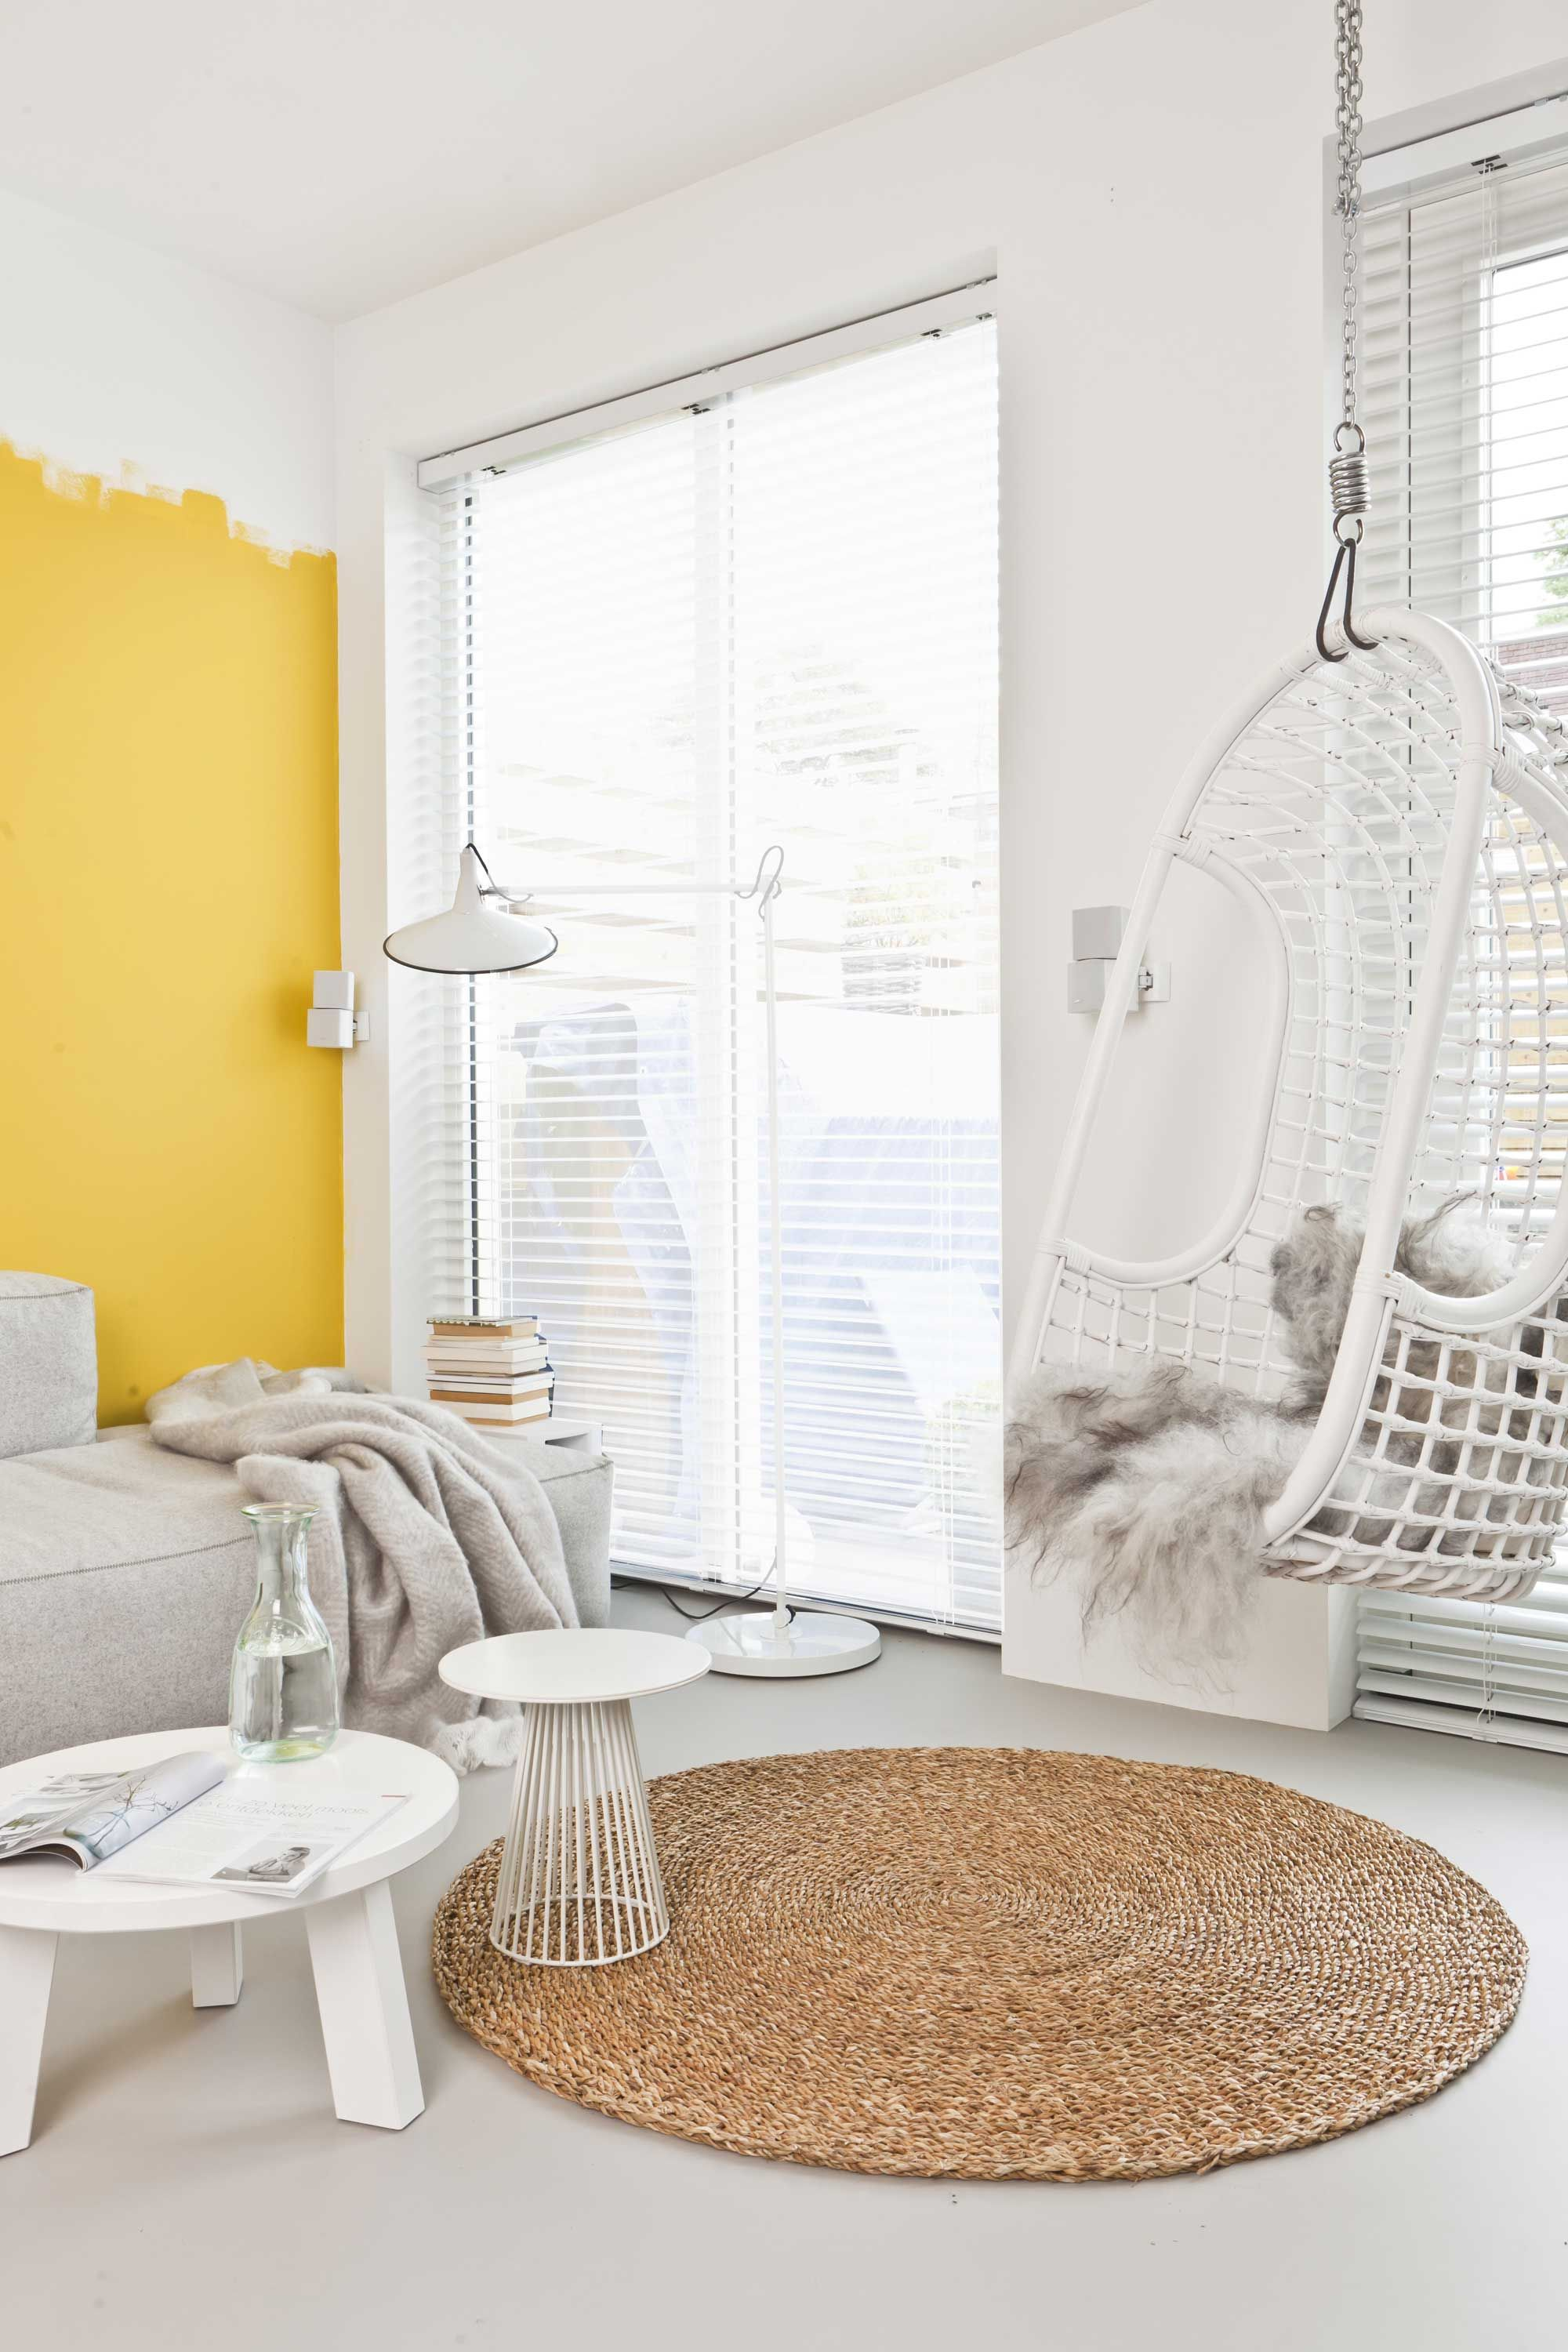 White livingroom bright yellow wall, hanging chair, round rug ...